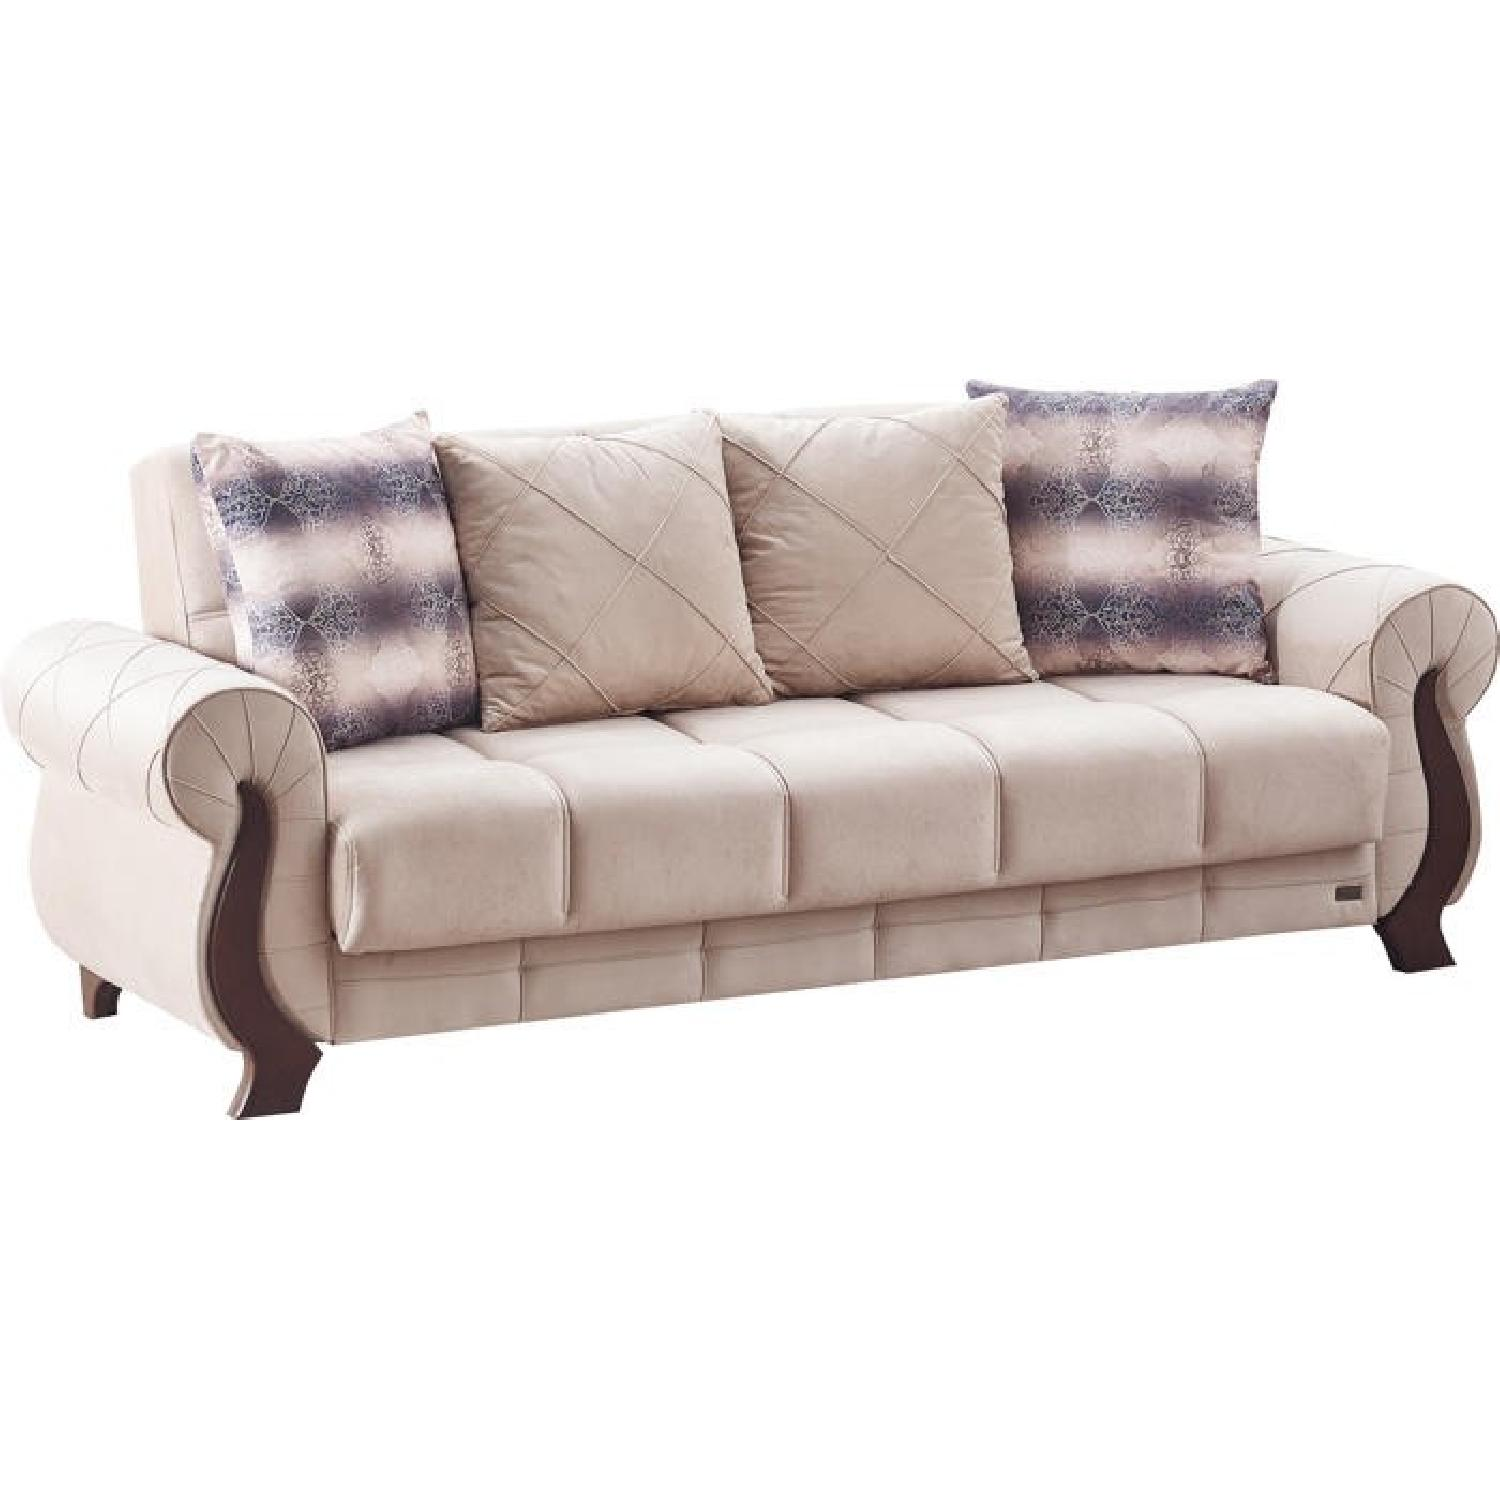 Ontario Beige Sofa Bed